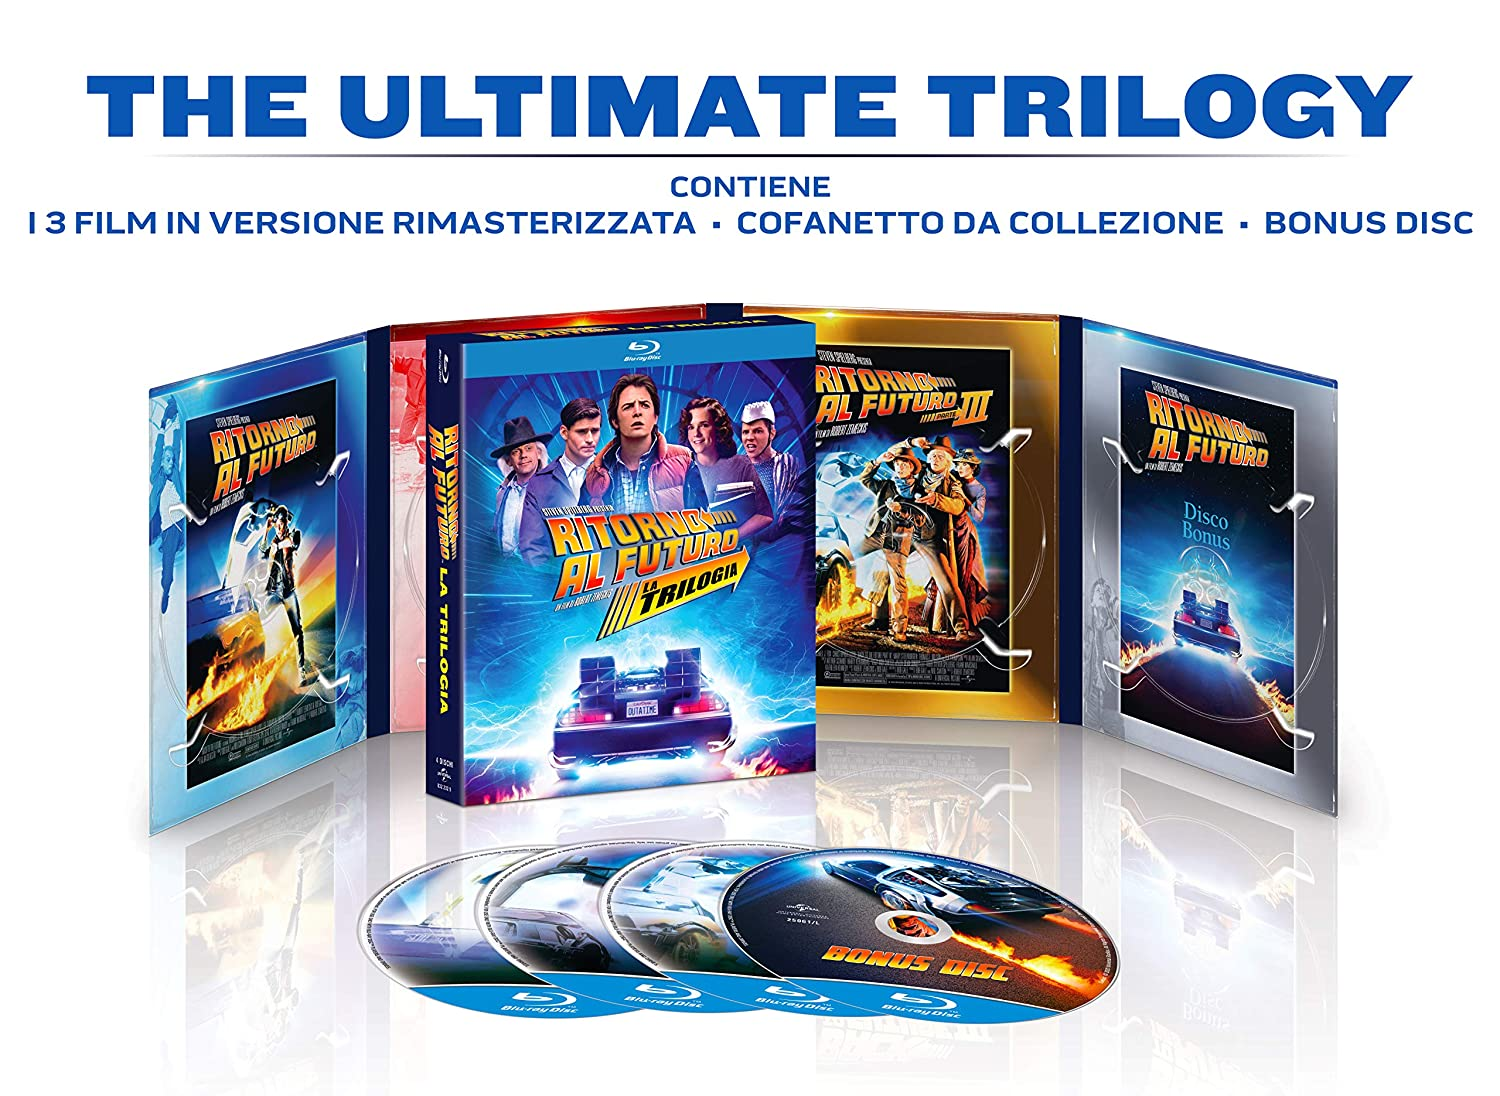 COF.RITORNO AL FUTURO - LA TRILOGIA 35TH ANNIVERSARY COLLECTION